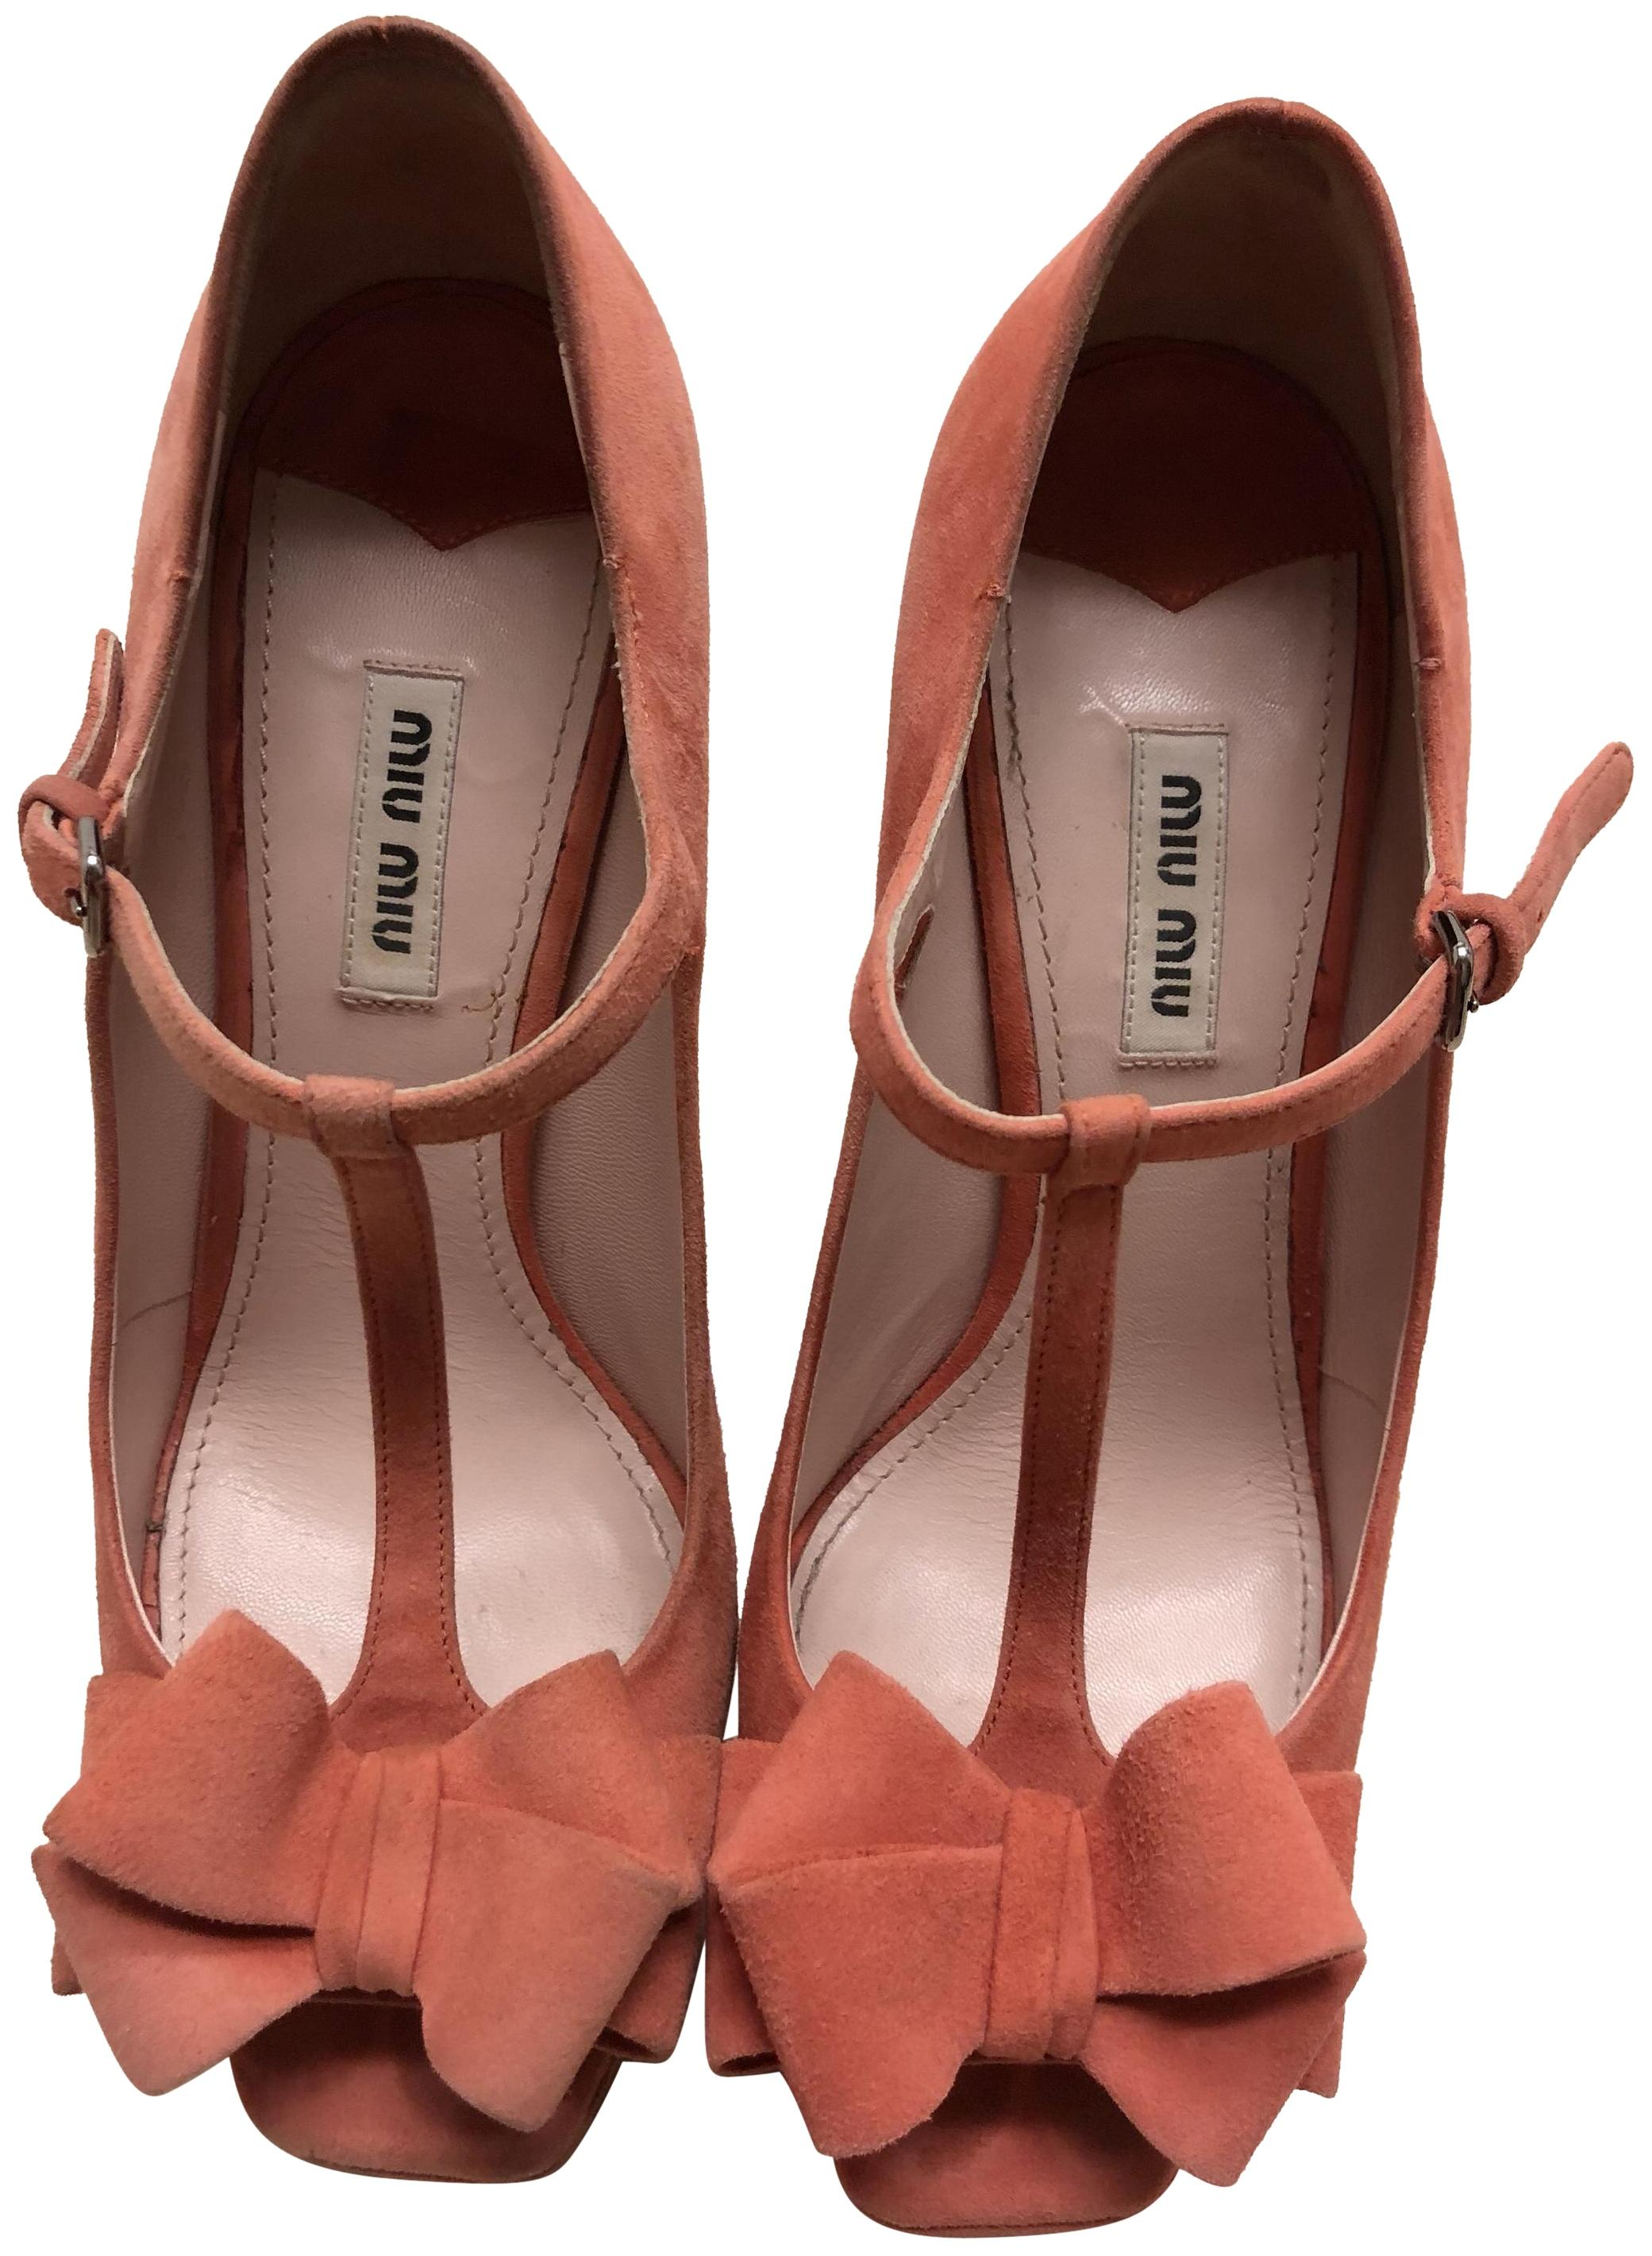 Miu Miu Orange and Pink Suede Mary Jane Peep Toe T-strap Bow Pumps Size EU 39 (Approx. US 9) Regular (M, B)